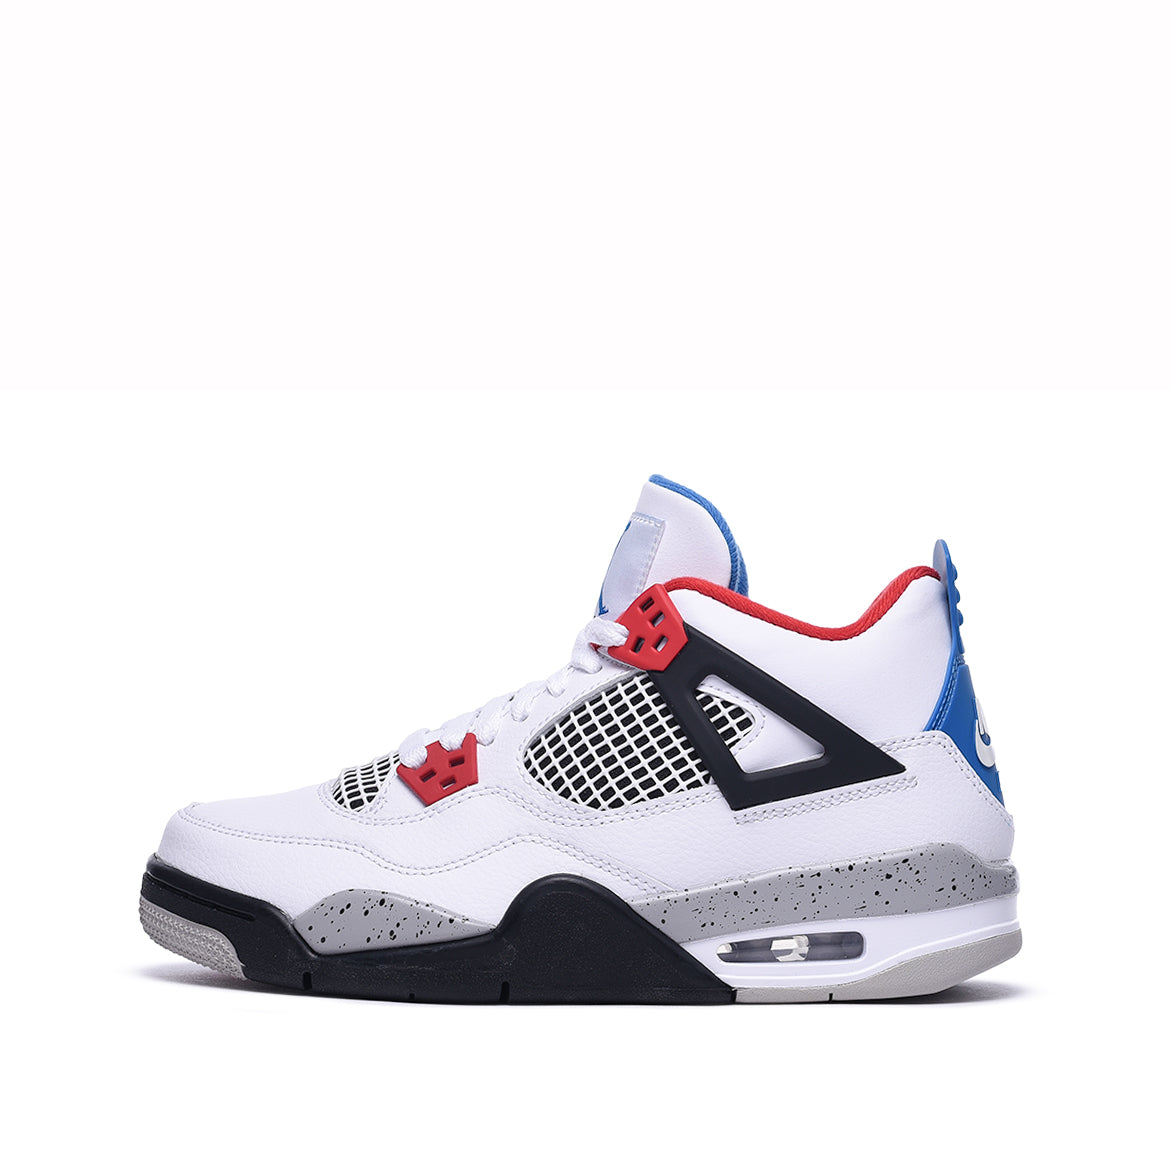 "AIR JORDAN 4 RETRO SE (GS) ""WHAT THE"""